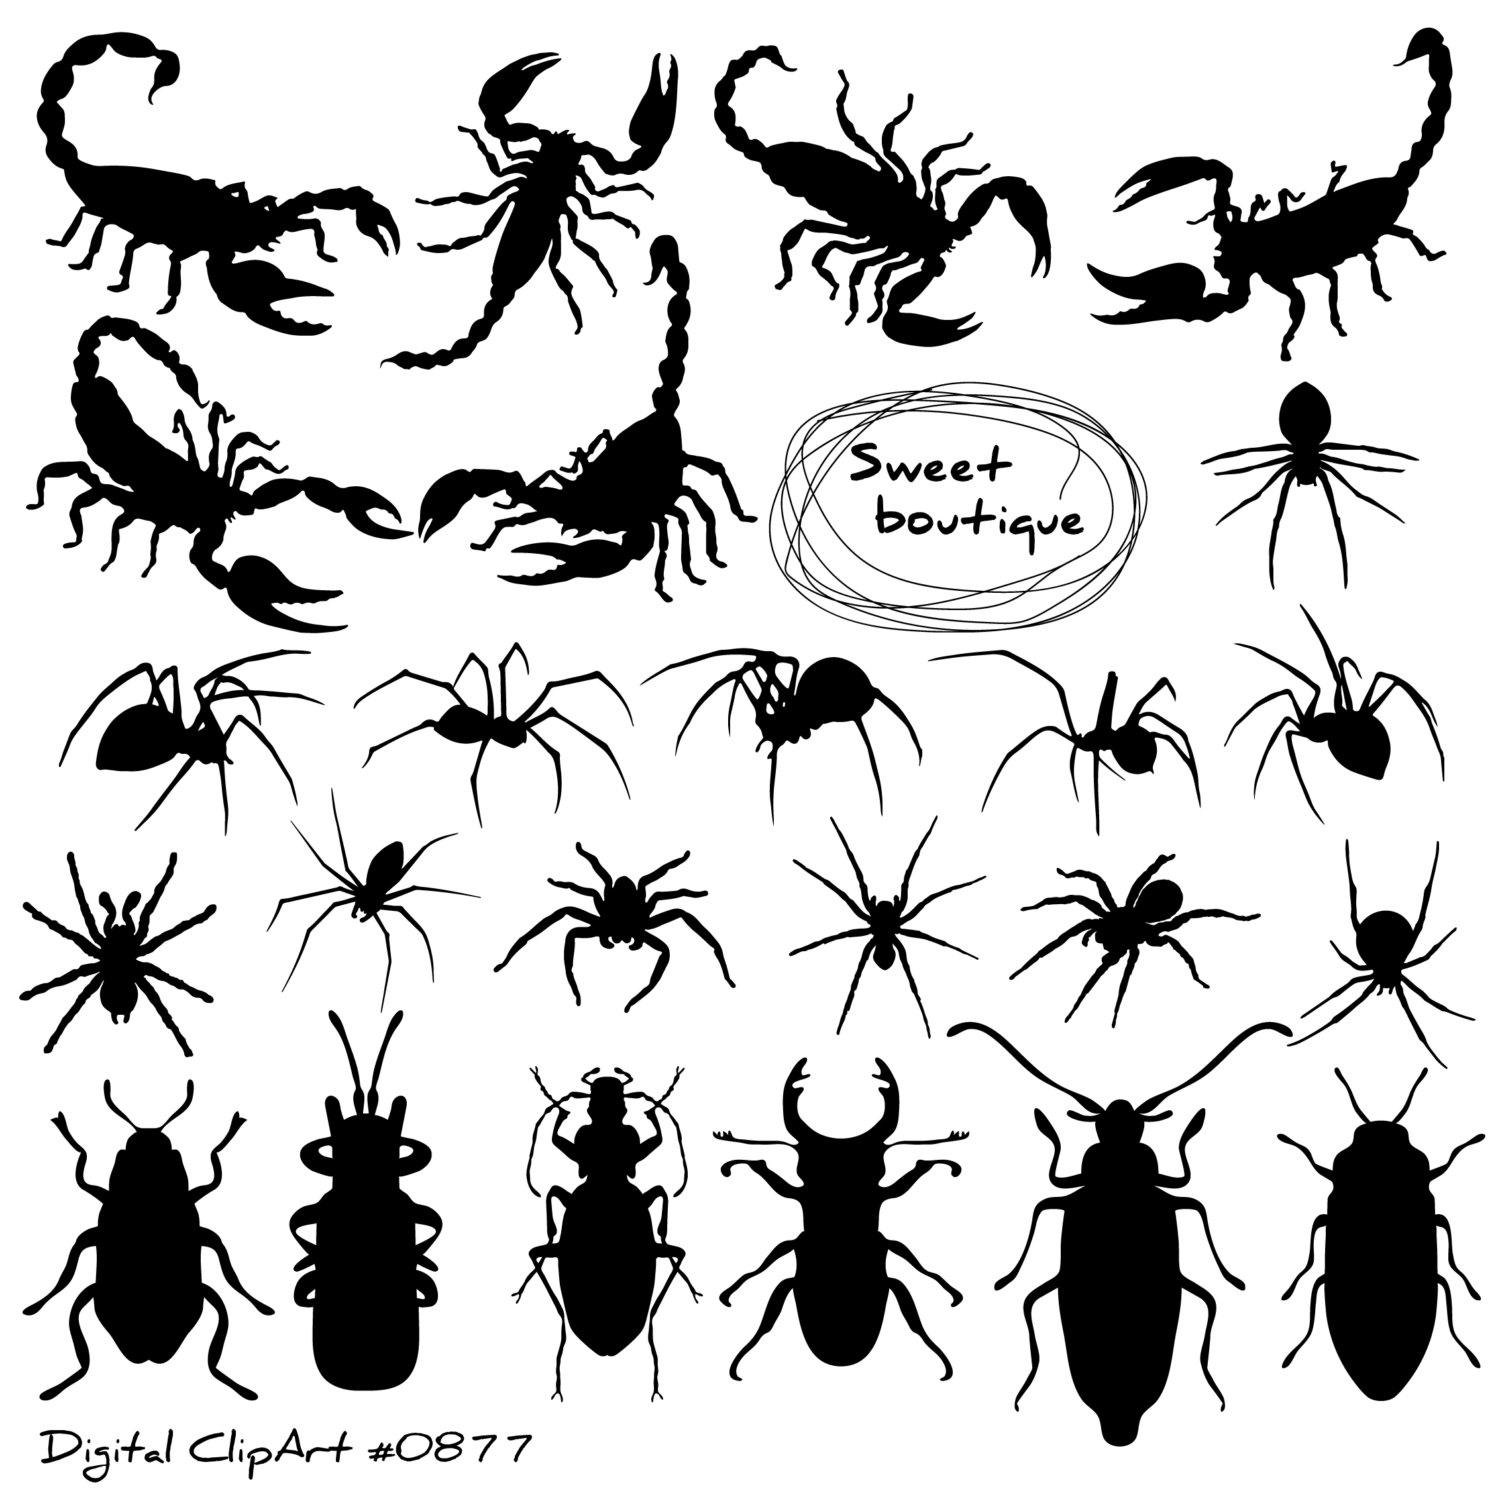 Insects clip art bugs. Bug clipart silhouette